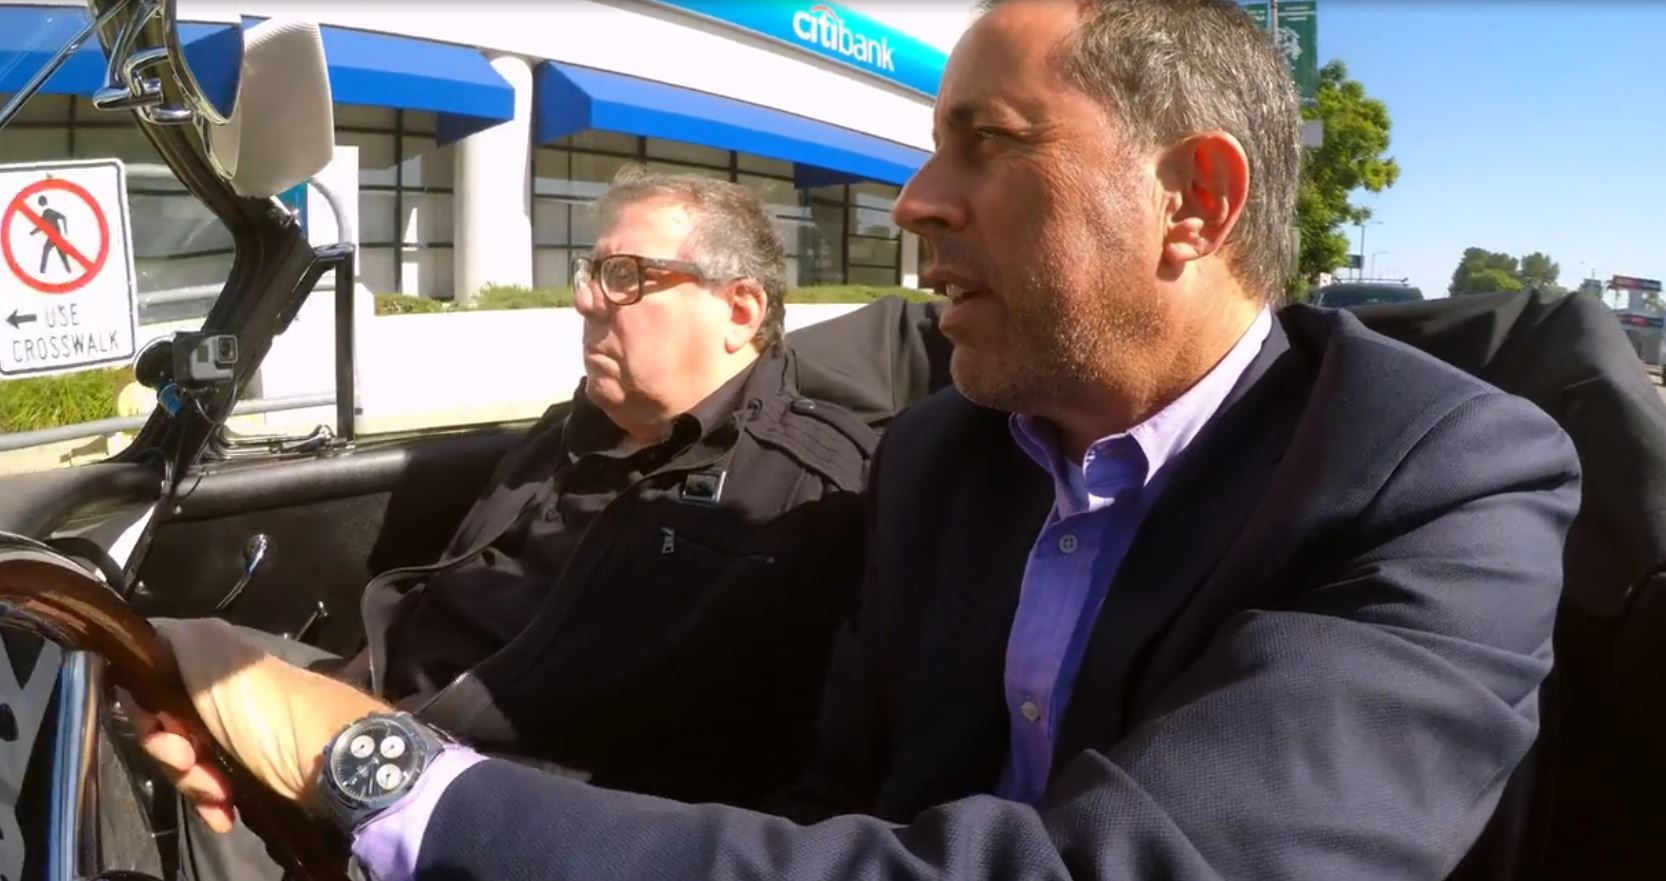 Spotted - Jerry Seinfeld Vintage Rolex 6239 Daytona from Vic Elford on TV-show Comedians in Cars Getting Coffee